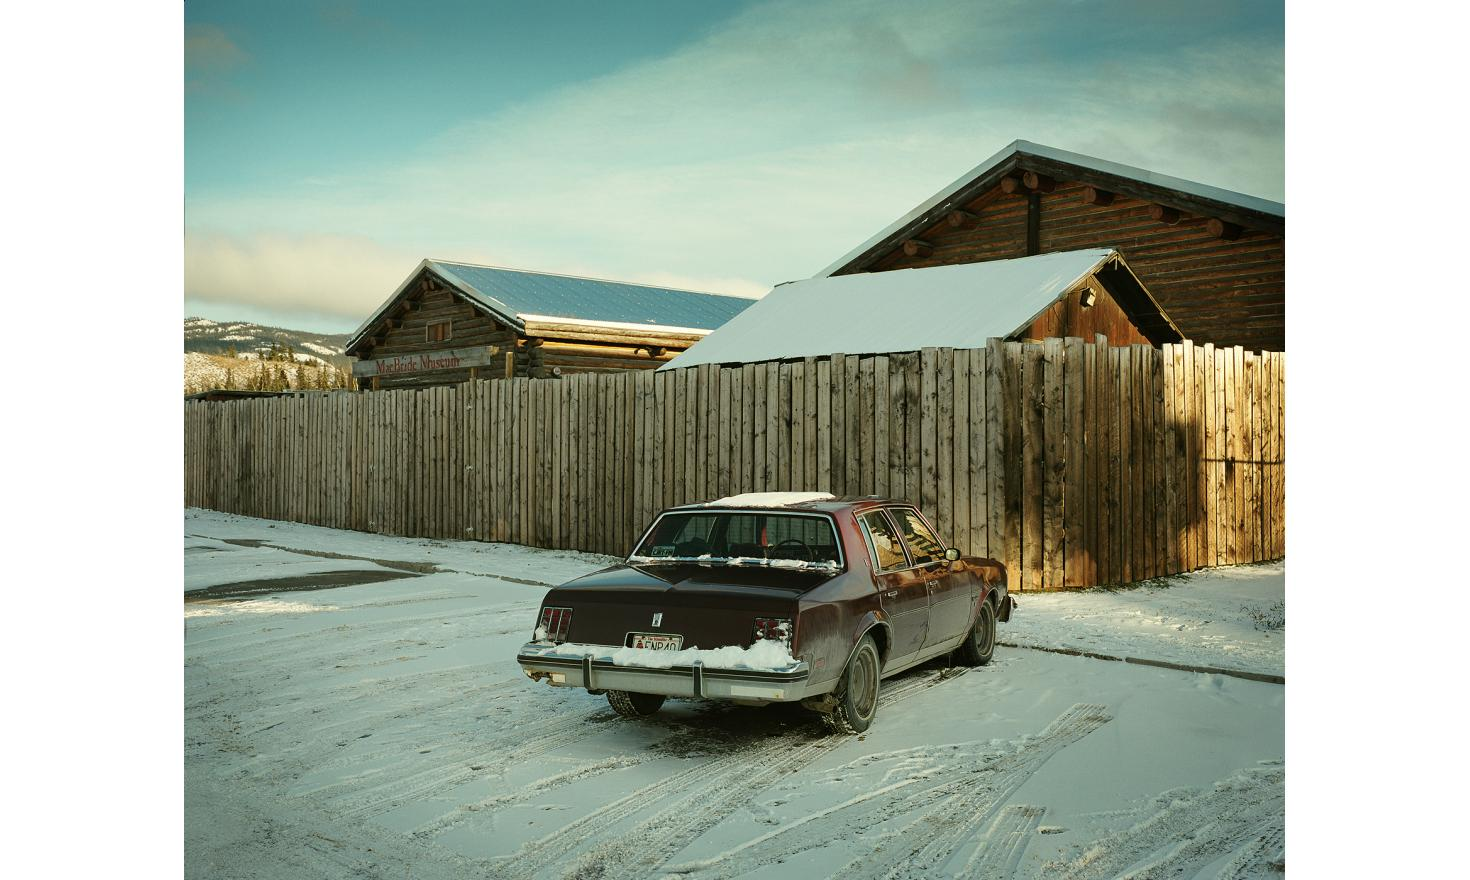 Road trip in the Canadian Yukon and the American Alaska